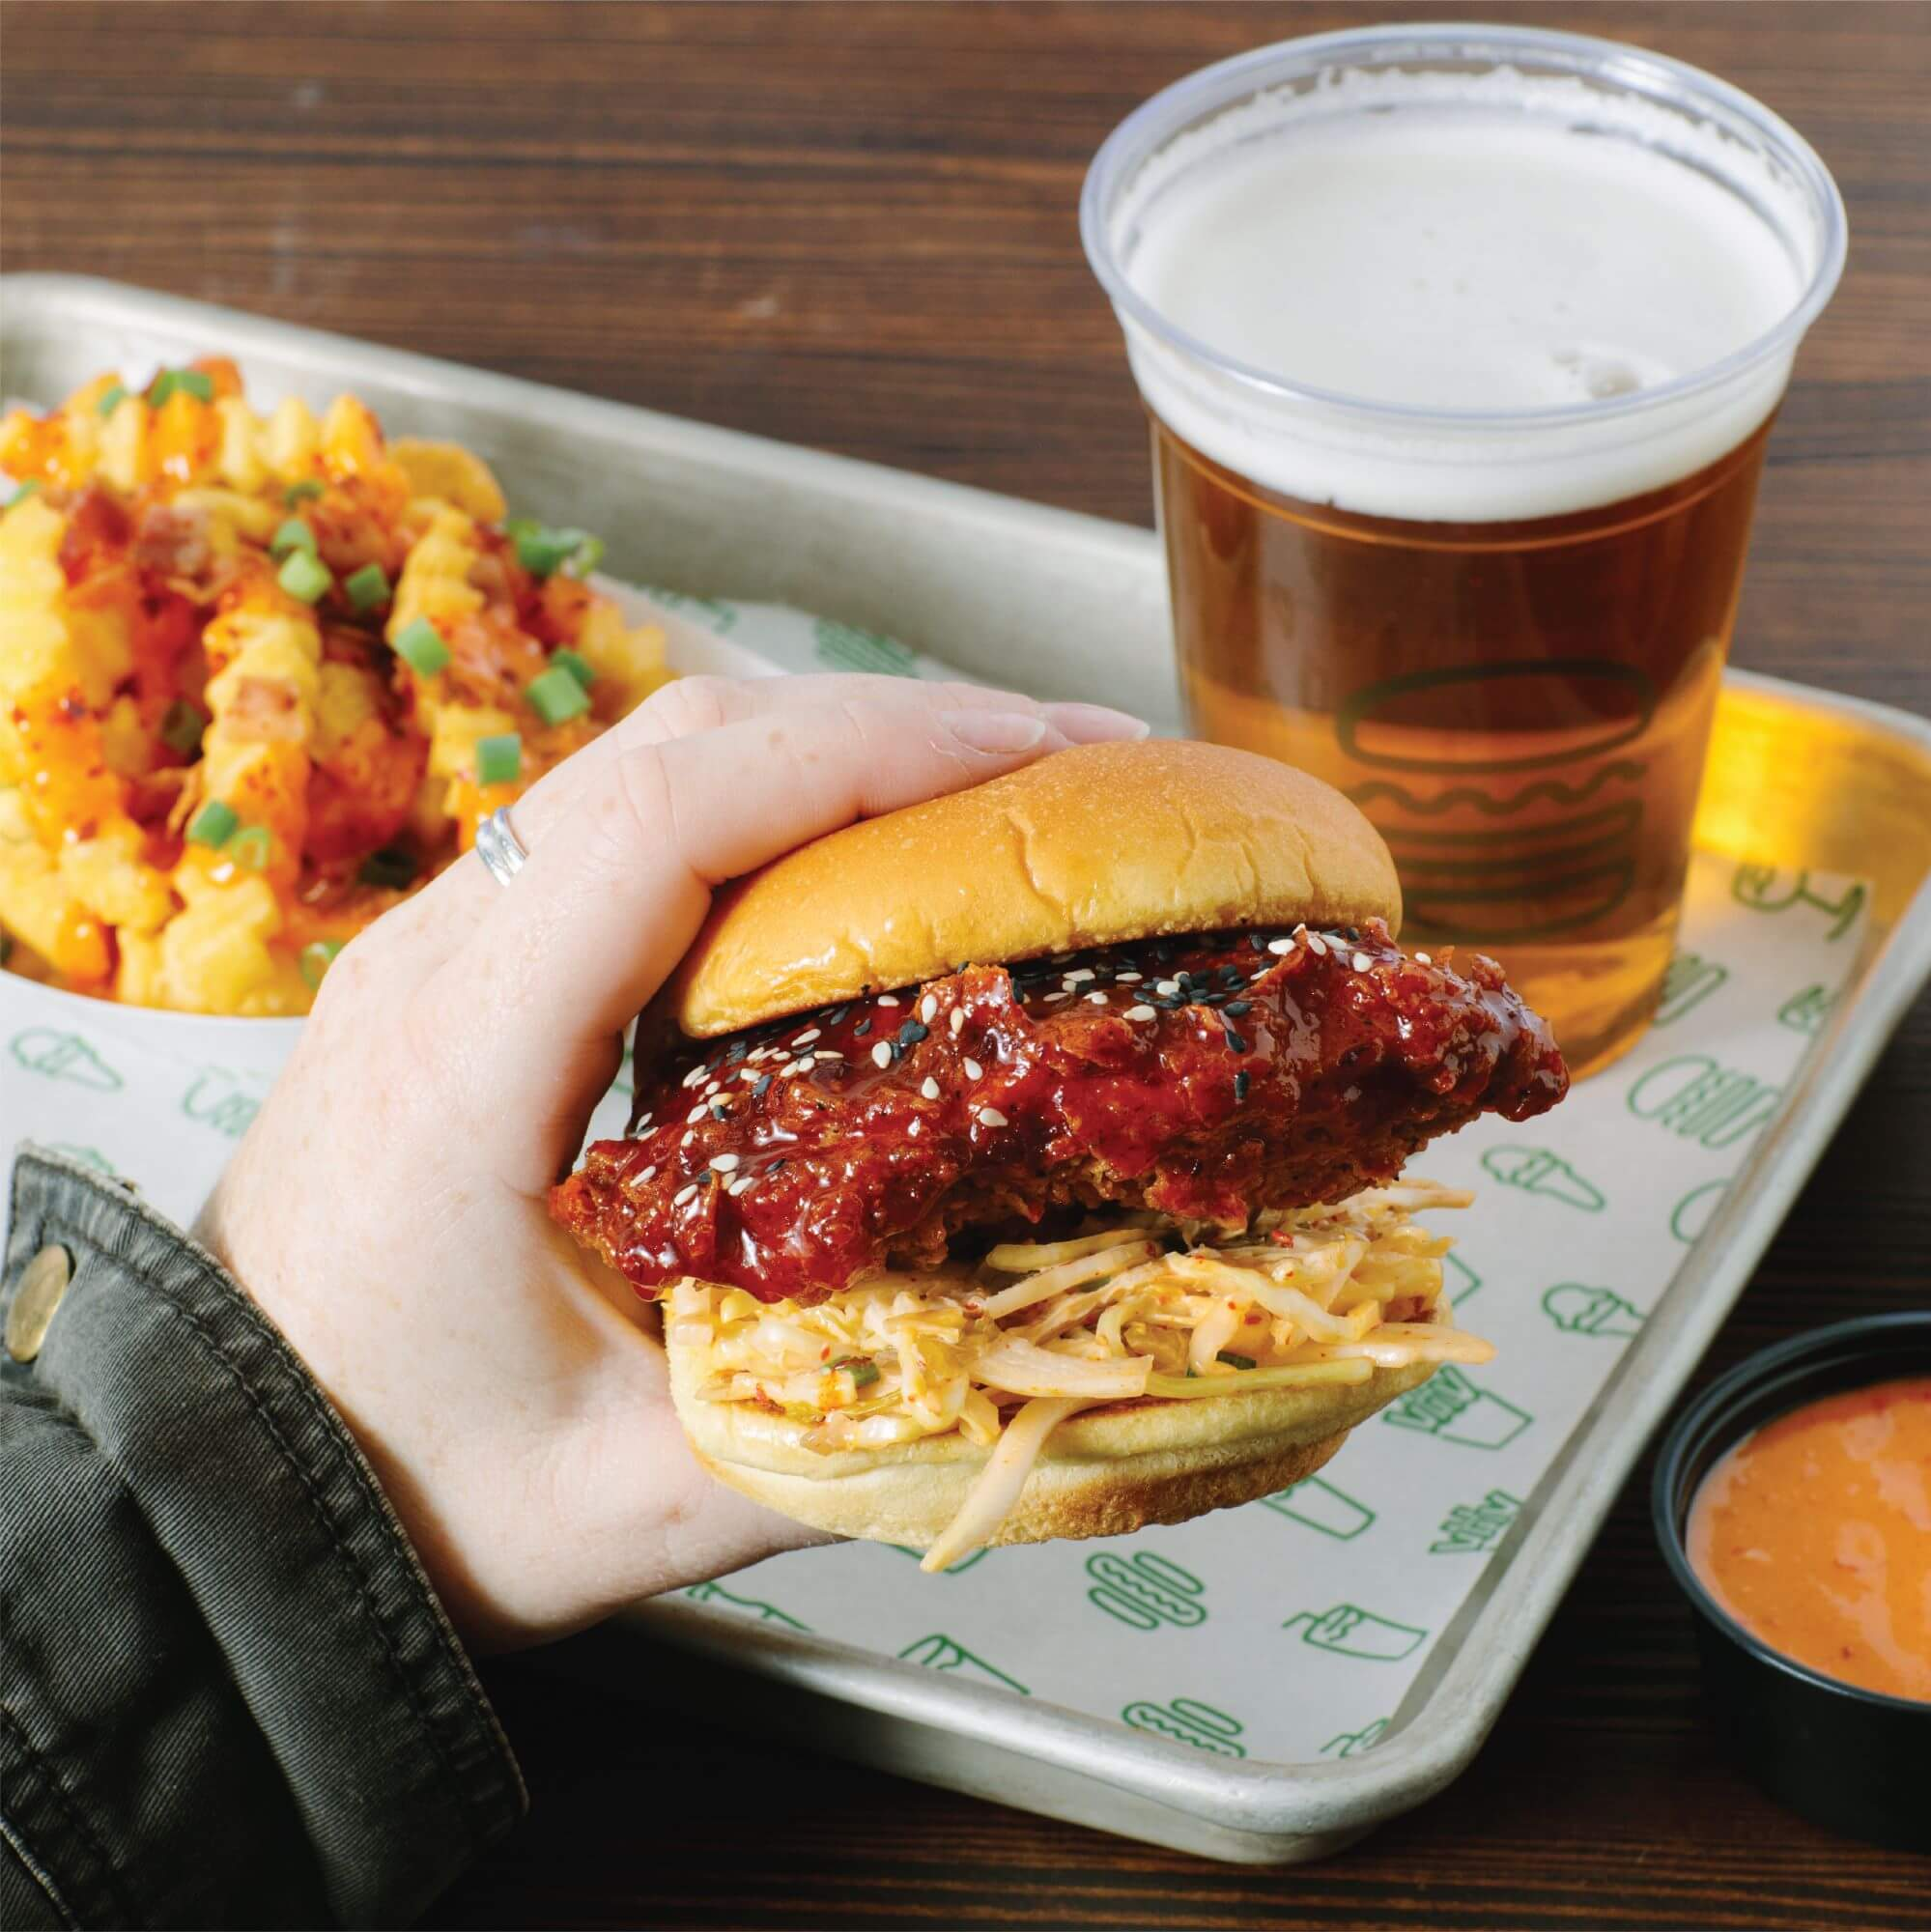 Gochujang burger, with fries and Shackmeister beer